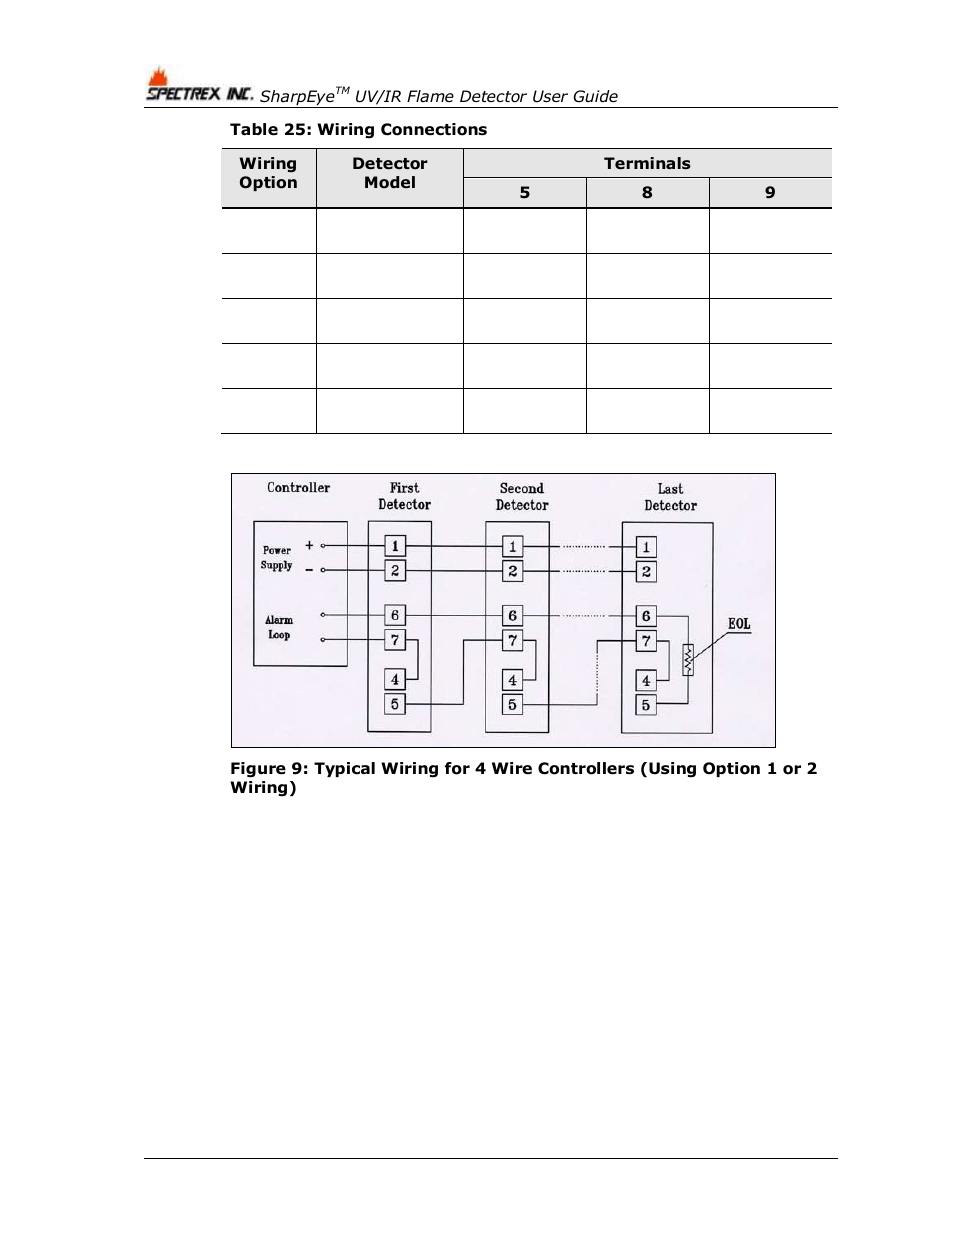 hight resolution of table 25 wiring connections spectrex 40 40l lb uv ir flame